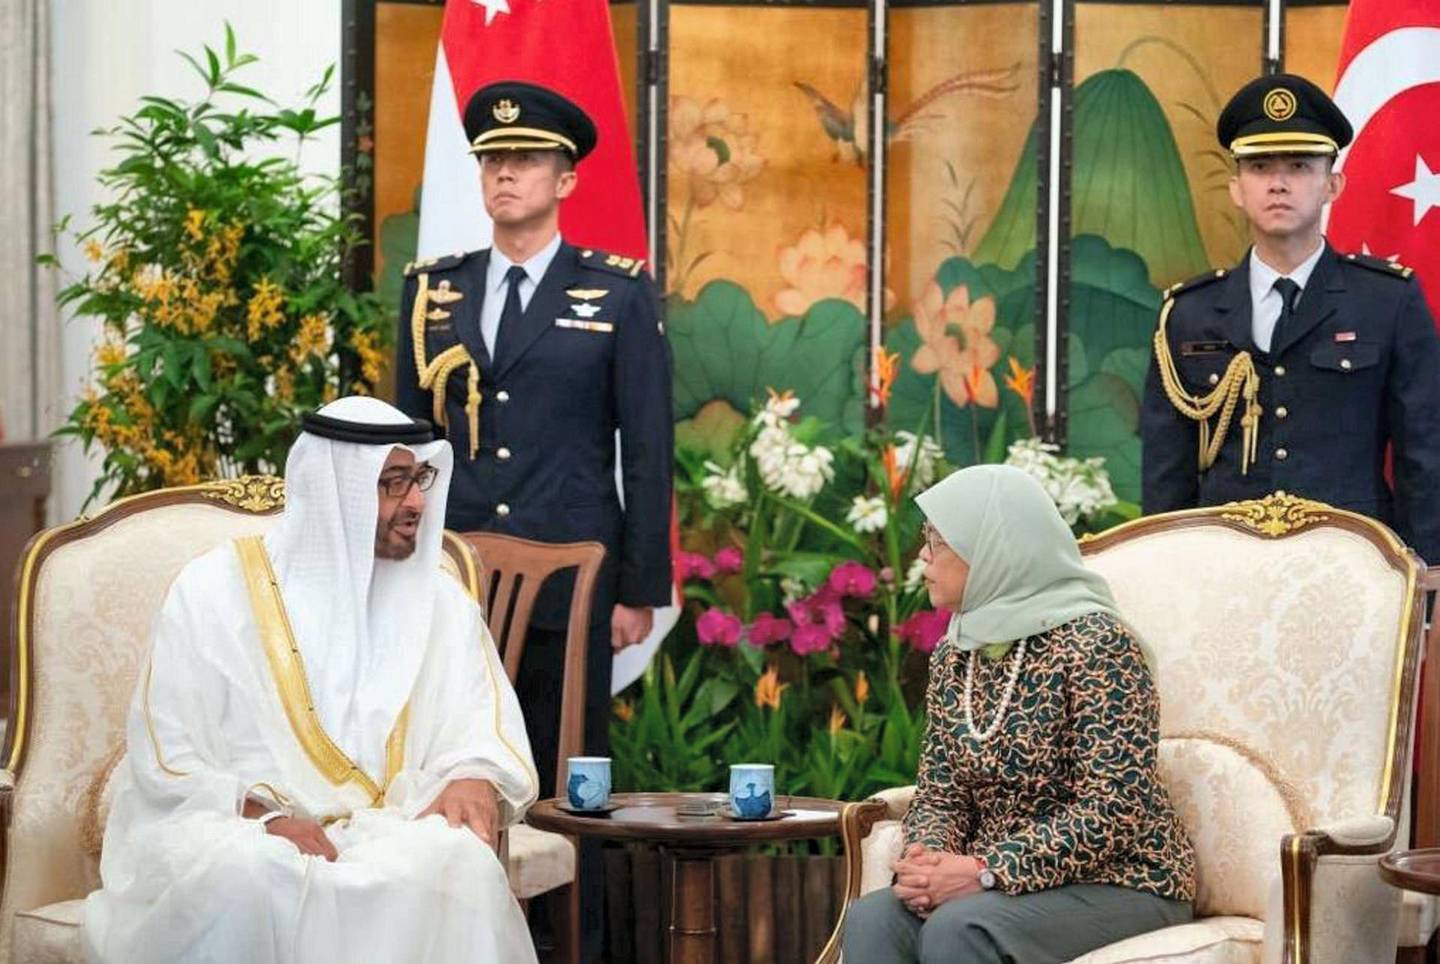 Mohamed_Bin_Zayed Pleased to visit the Republic of Singapore and meet with Her Excellency Halimah Yacob. We're both keen to further strengthen our bilateral ties and are optimistic about their future. MBZ twitter account